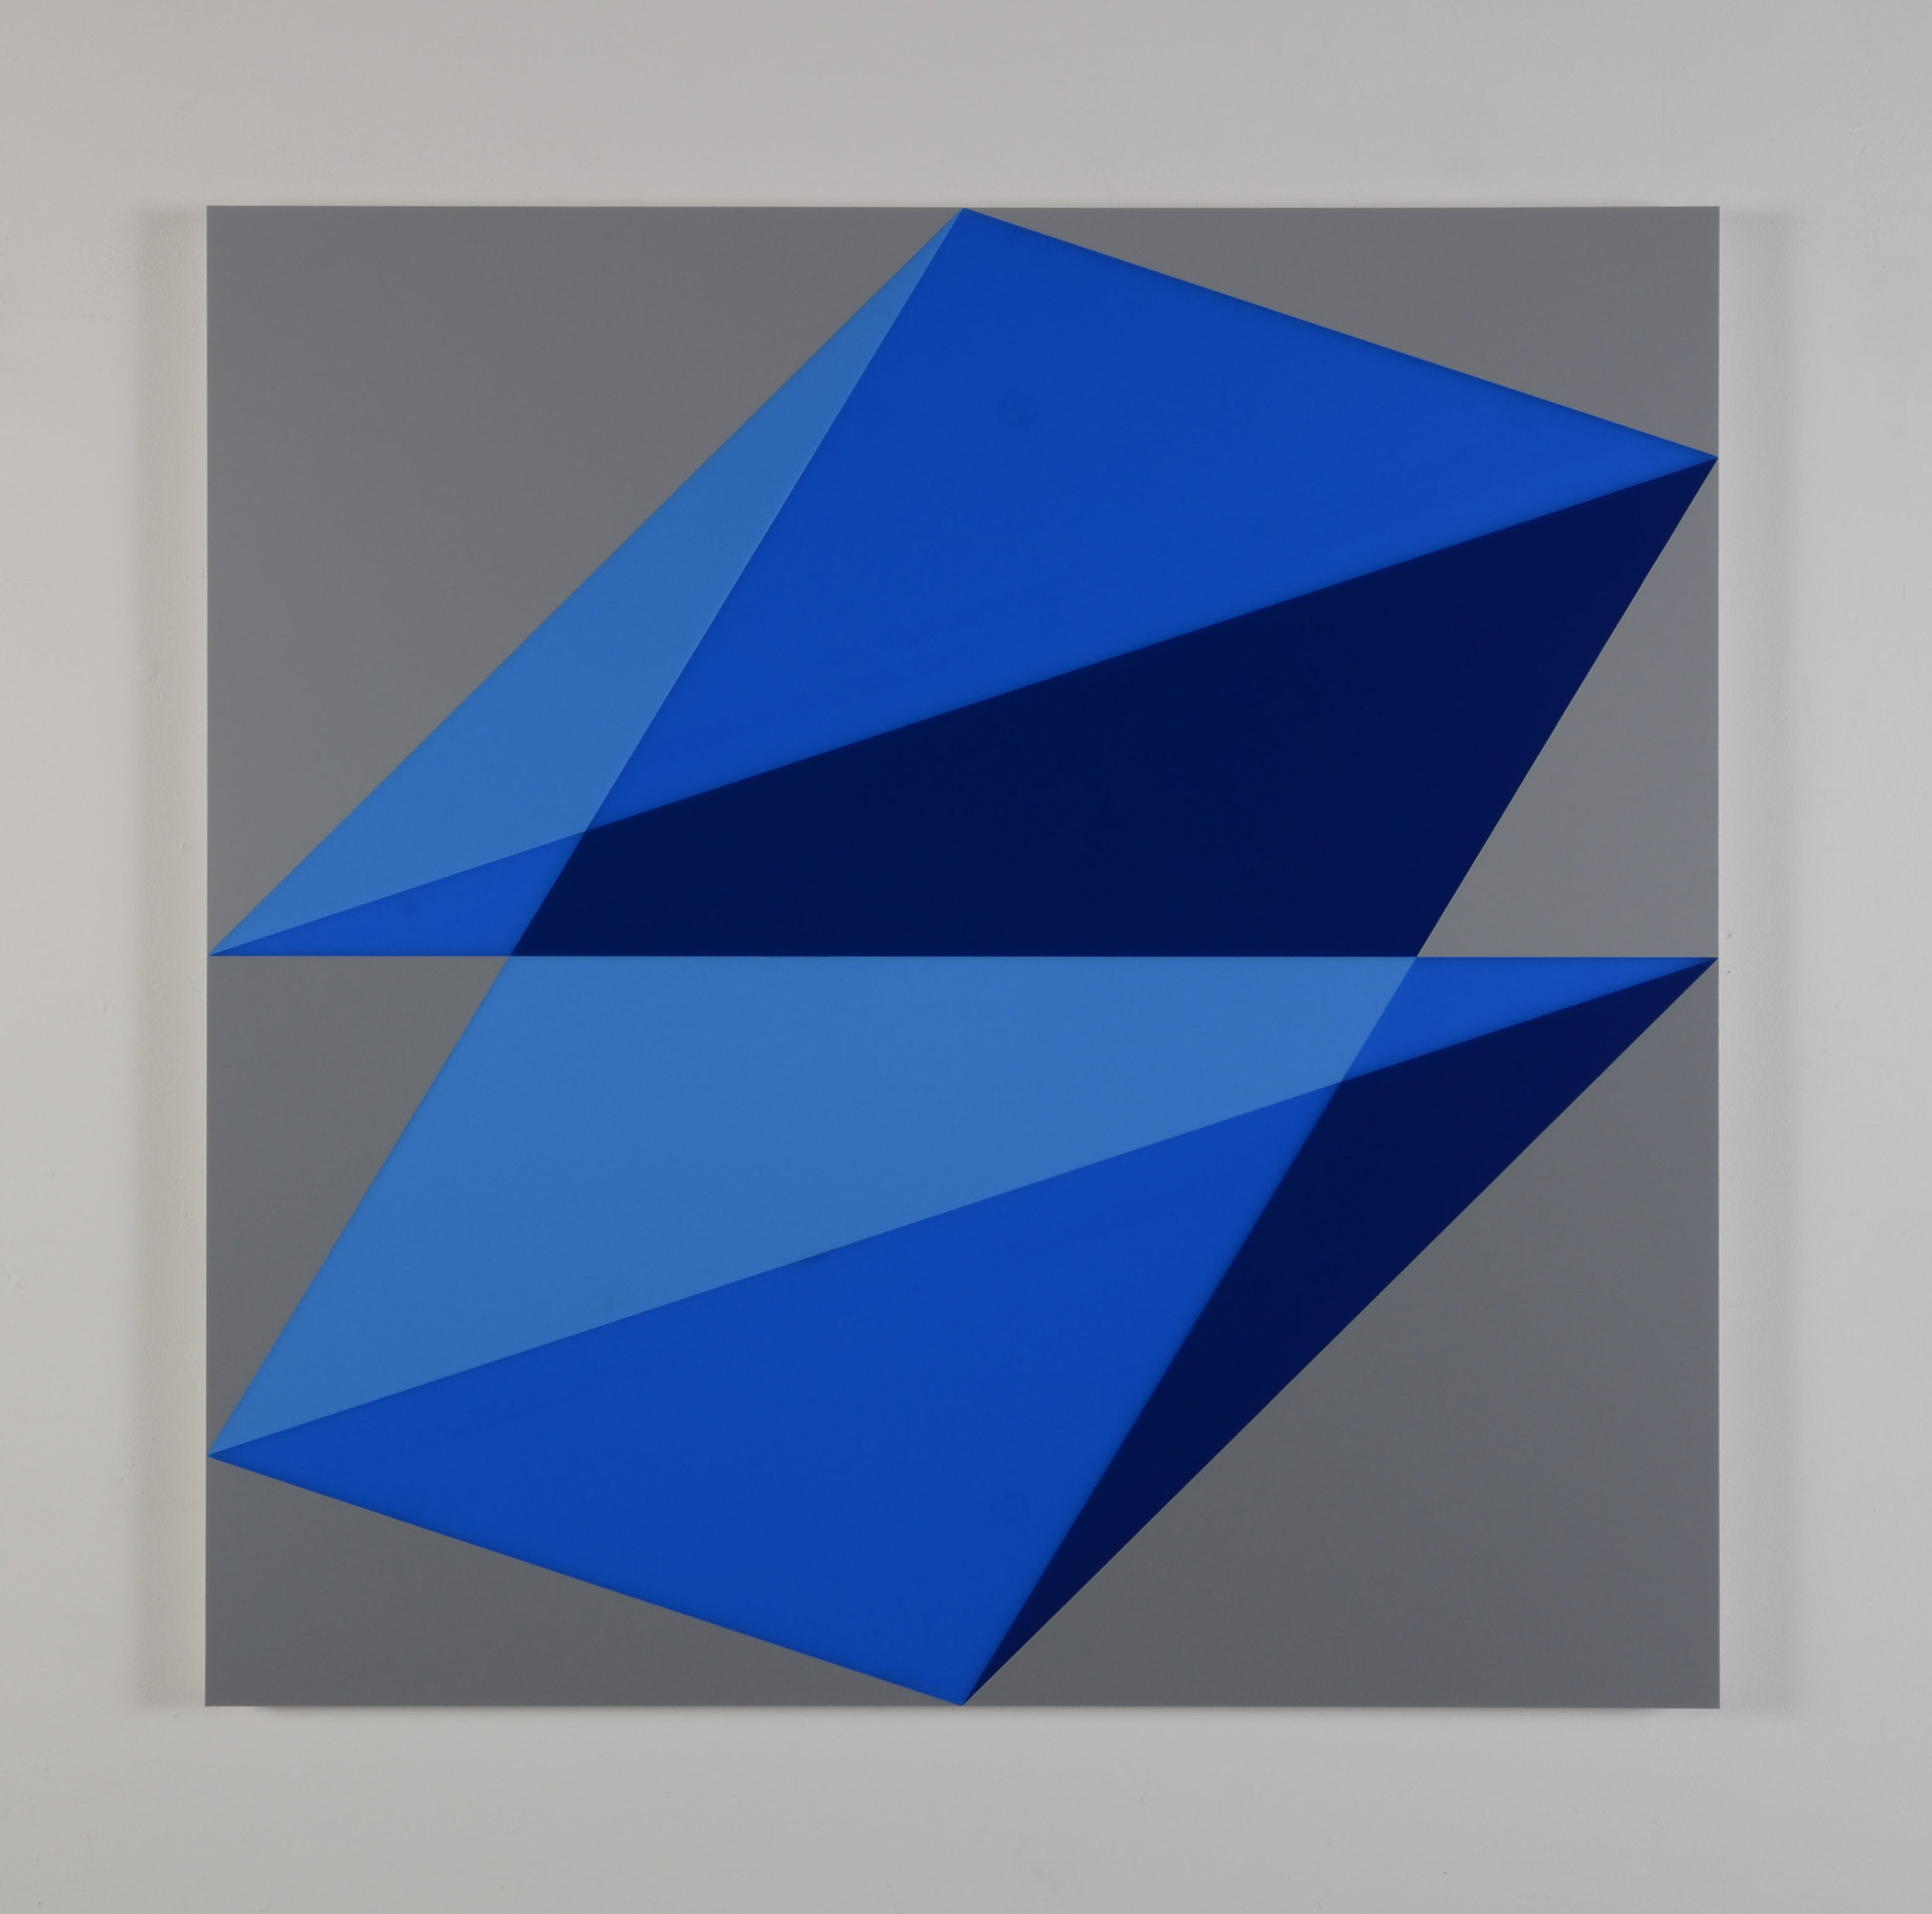 Composition in 2648 Blue,2051 Blue, 2114 Blueand 3001 Gray